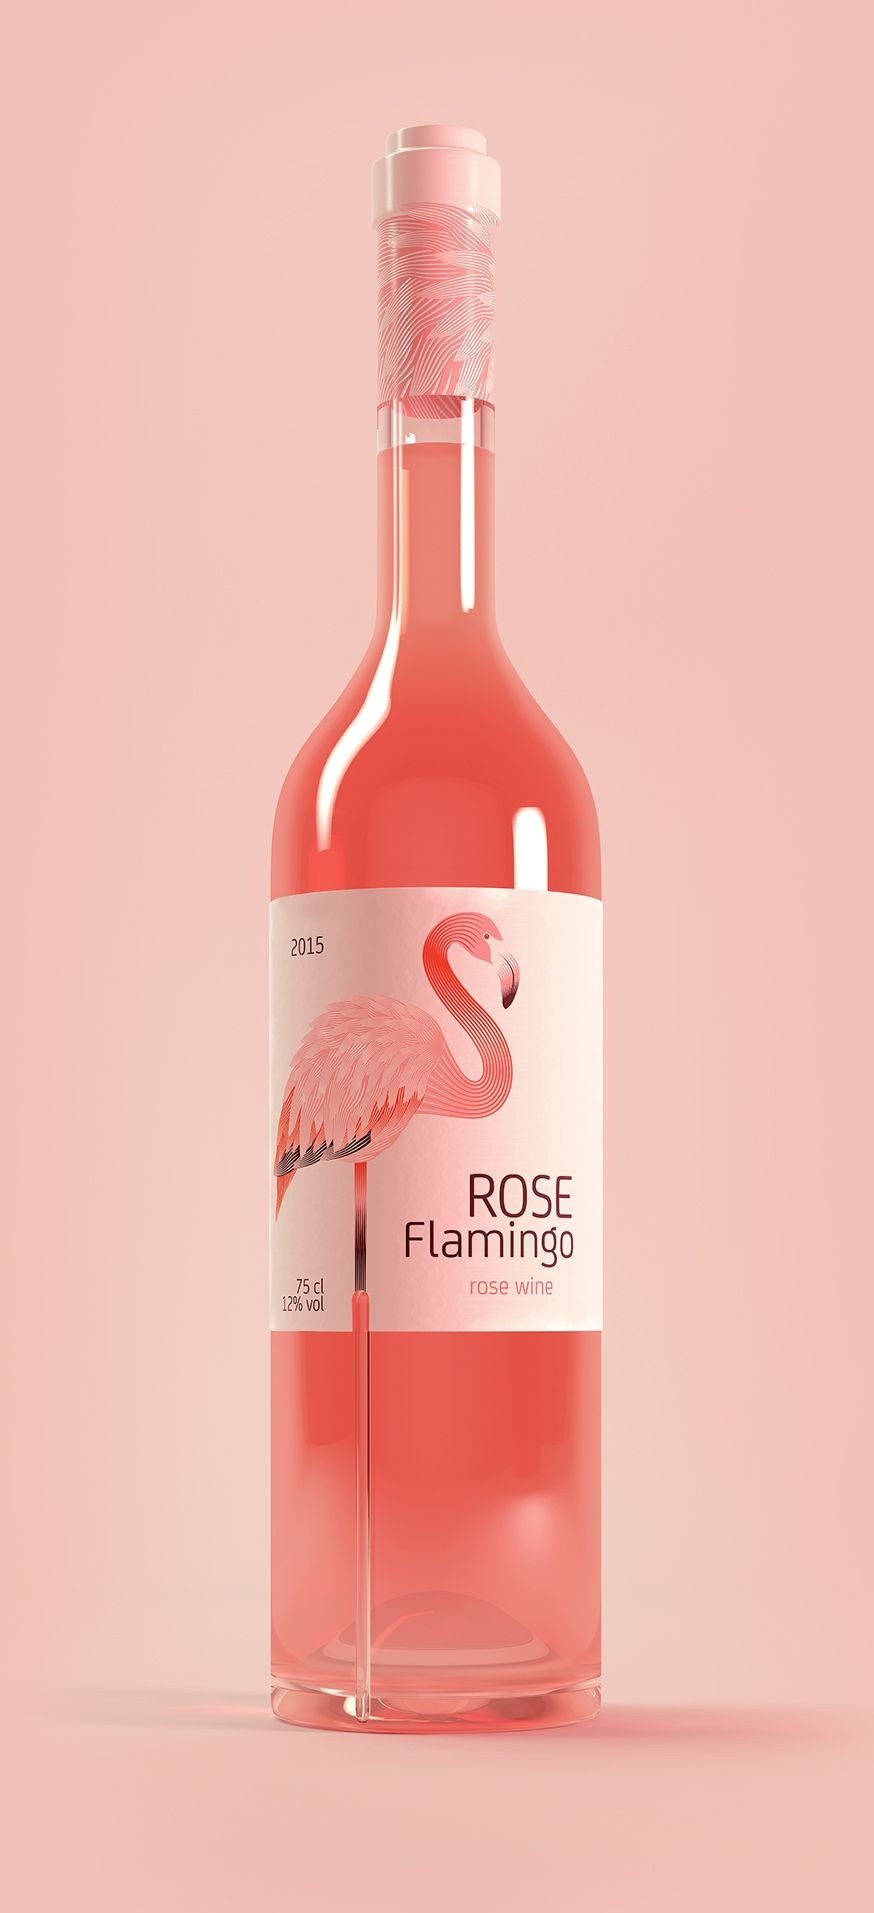 Packaging Spotlight Rose Flamingo Wine Wine Packaging Wine Bottle Design Wine Label Design